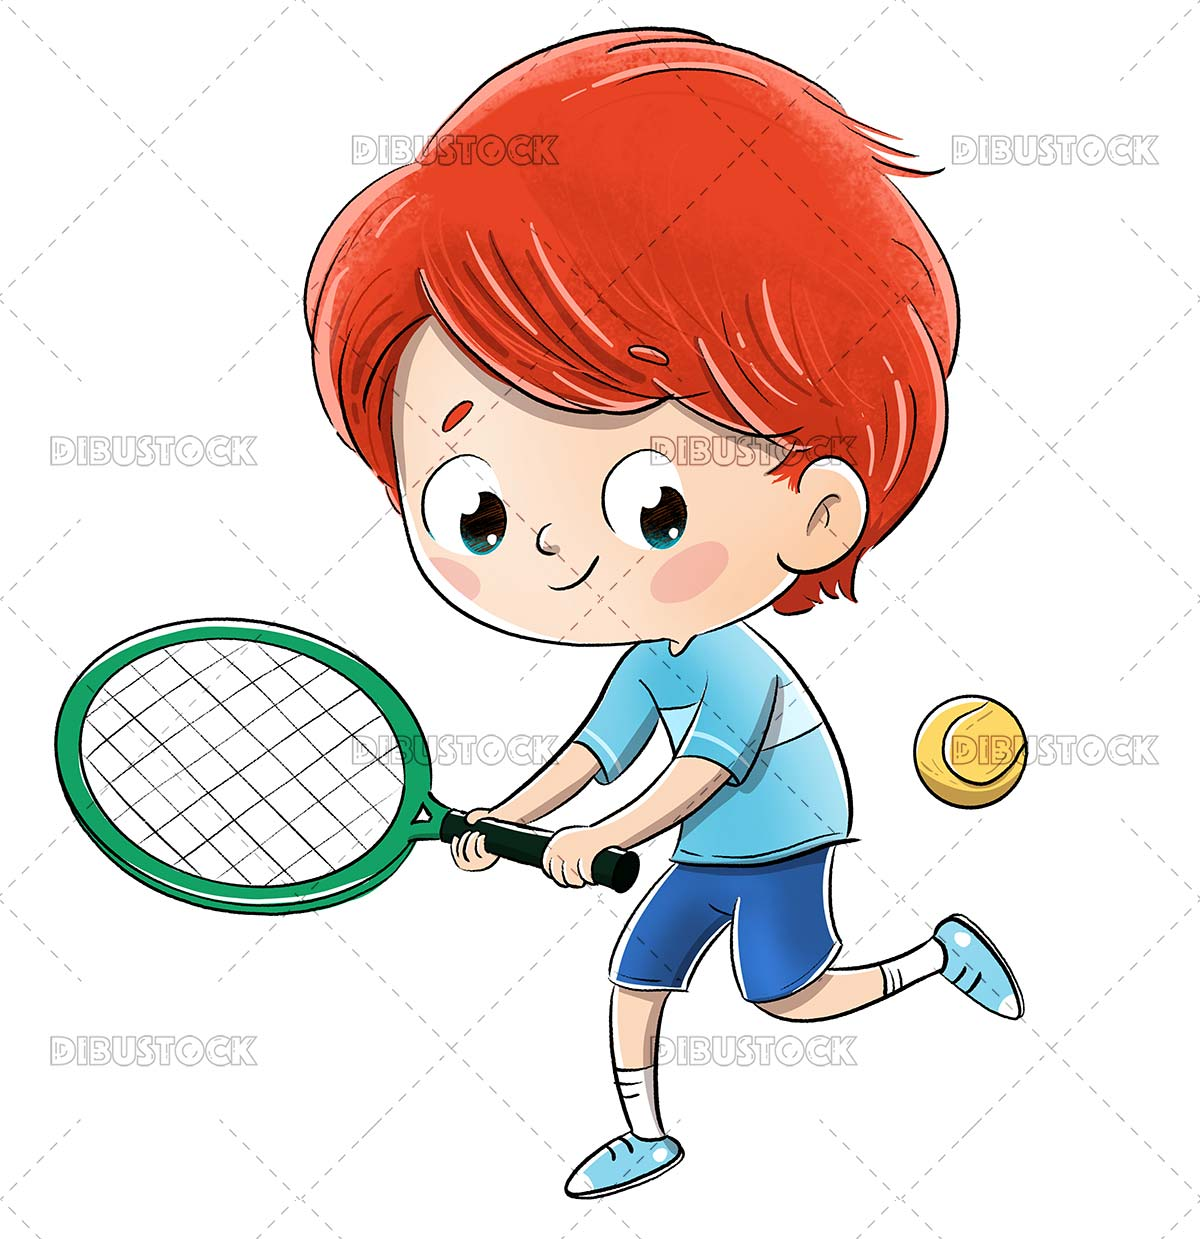 Boy playing tennis with a racket